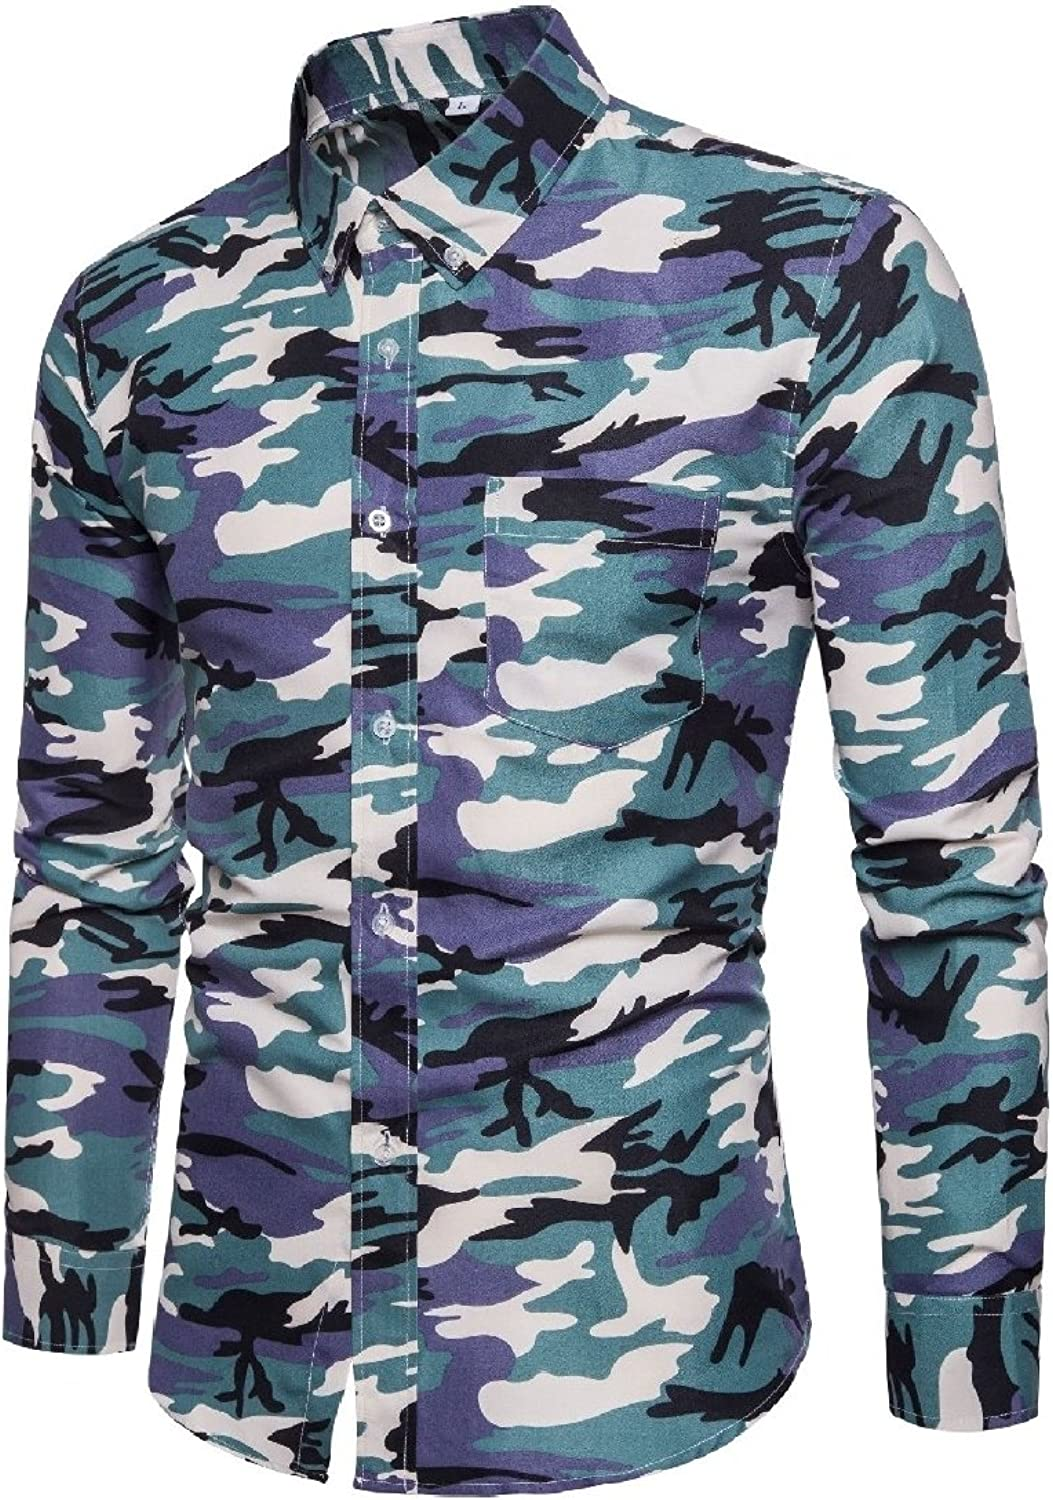 d742a1e9e29e2e GodeyesMen Godeyes Men's Stylish Stylish Stylish Button Down Tops  Long-Sleeve Long Sleeve Printed Fitted Camo Lapel Shirts fe5318